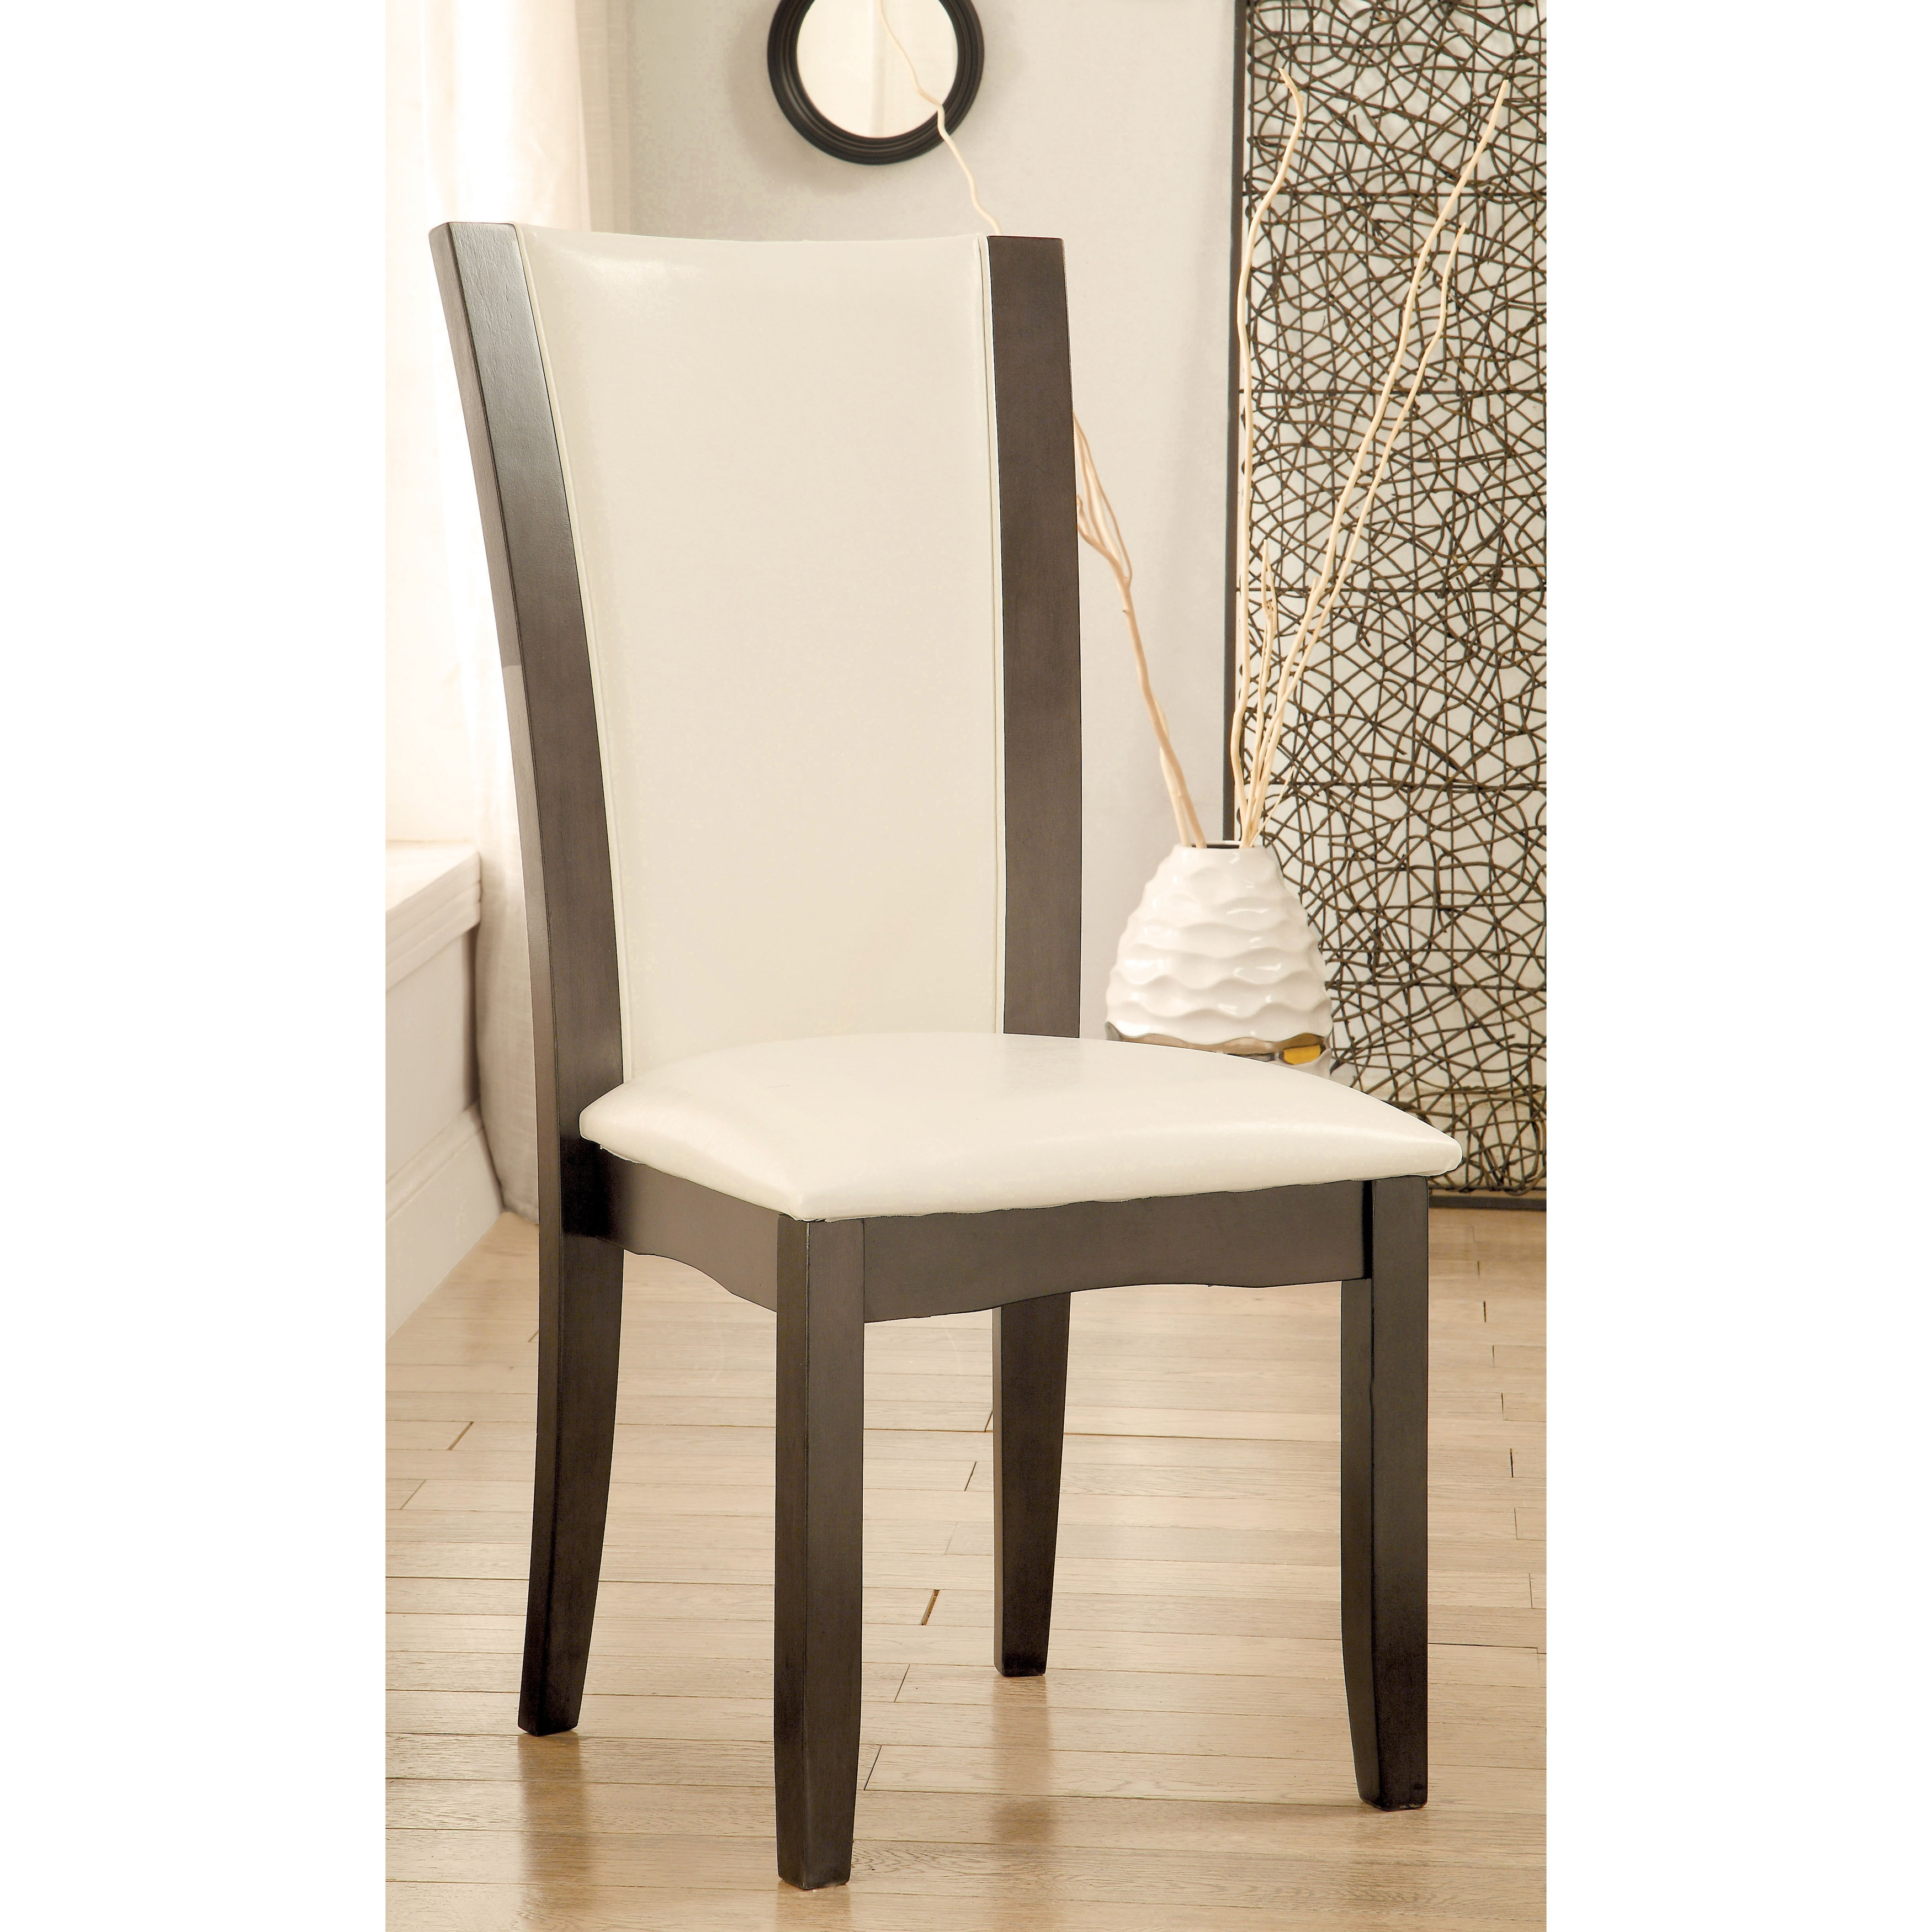 Furniture of America Mario II White Leatherette Brown Dining Chairs (Set of 2)